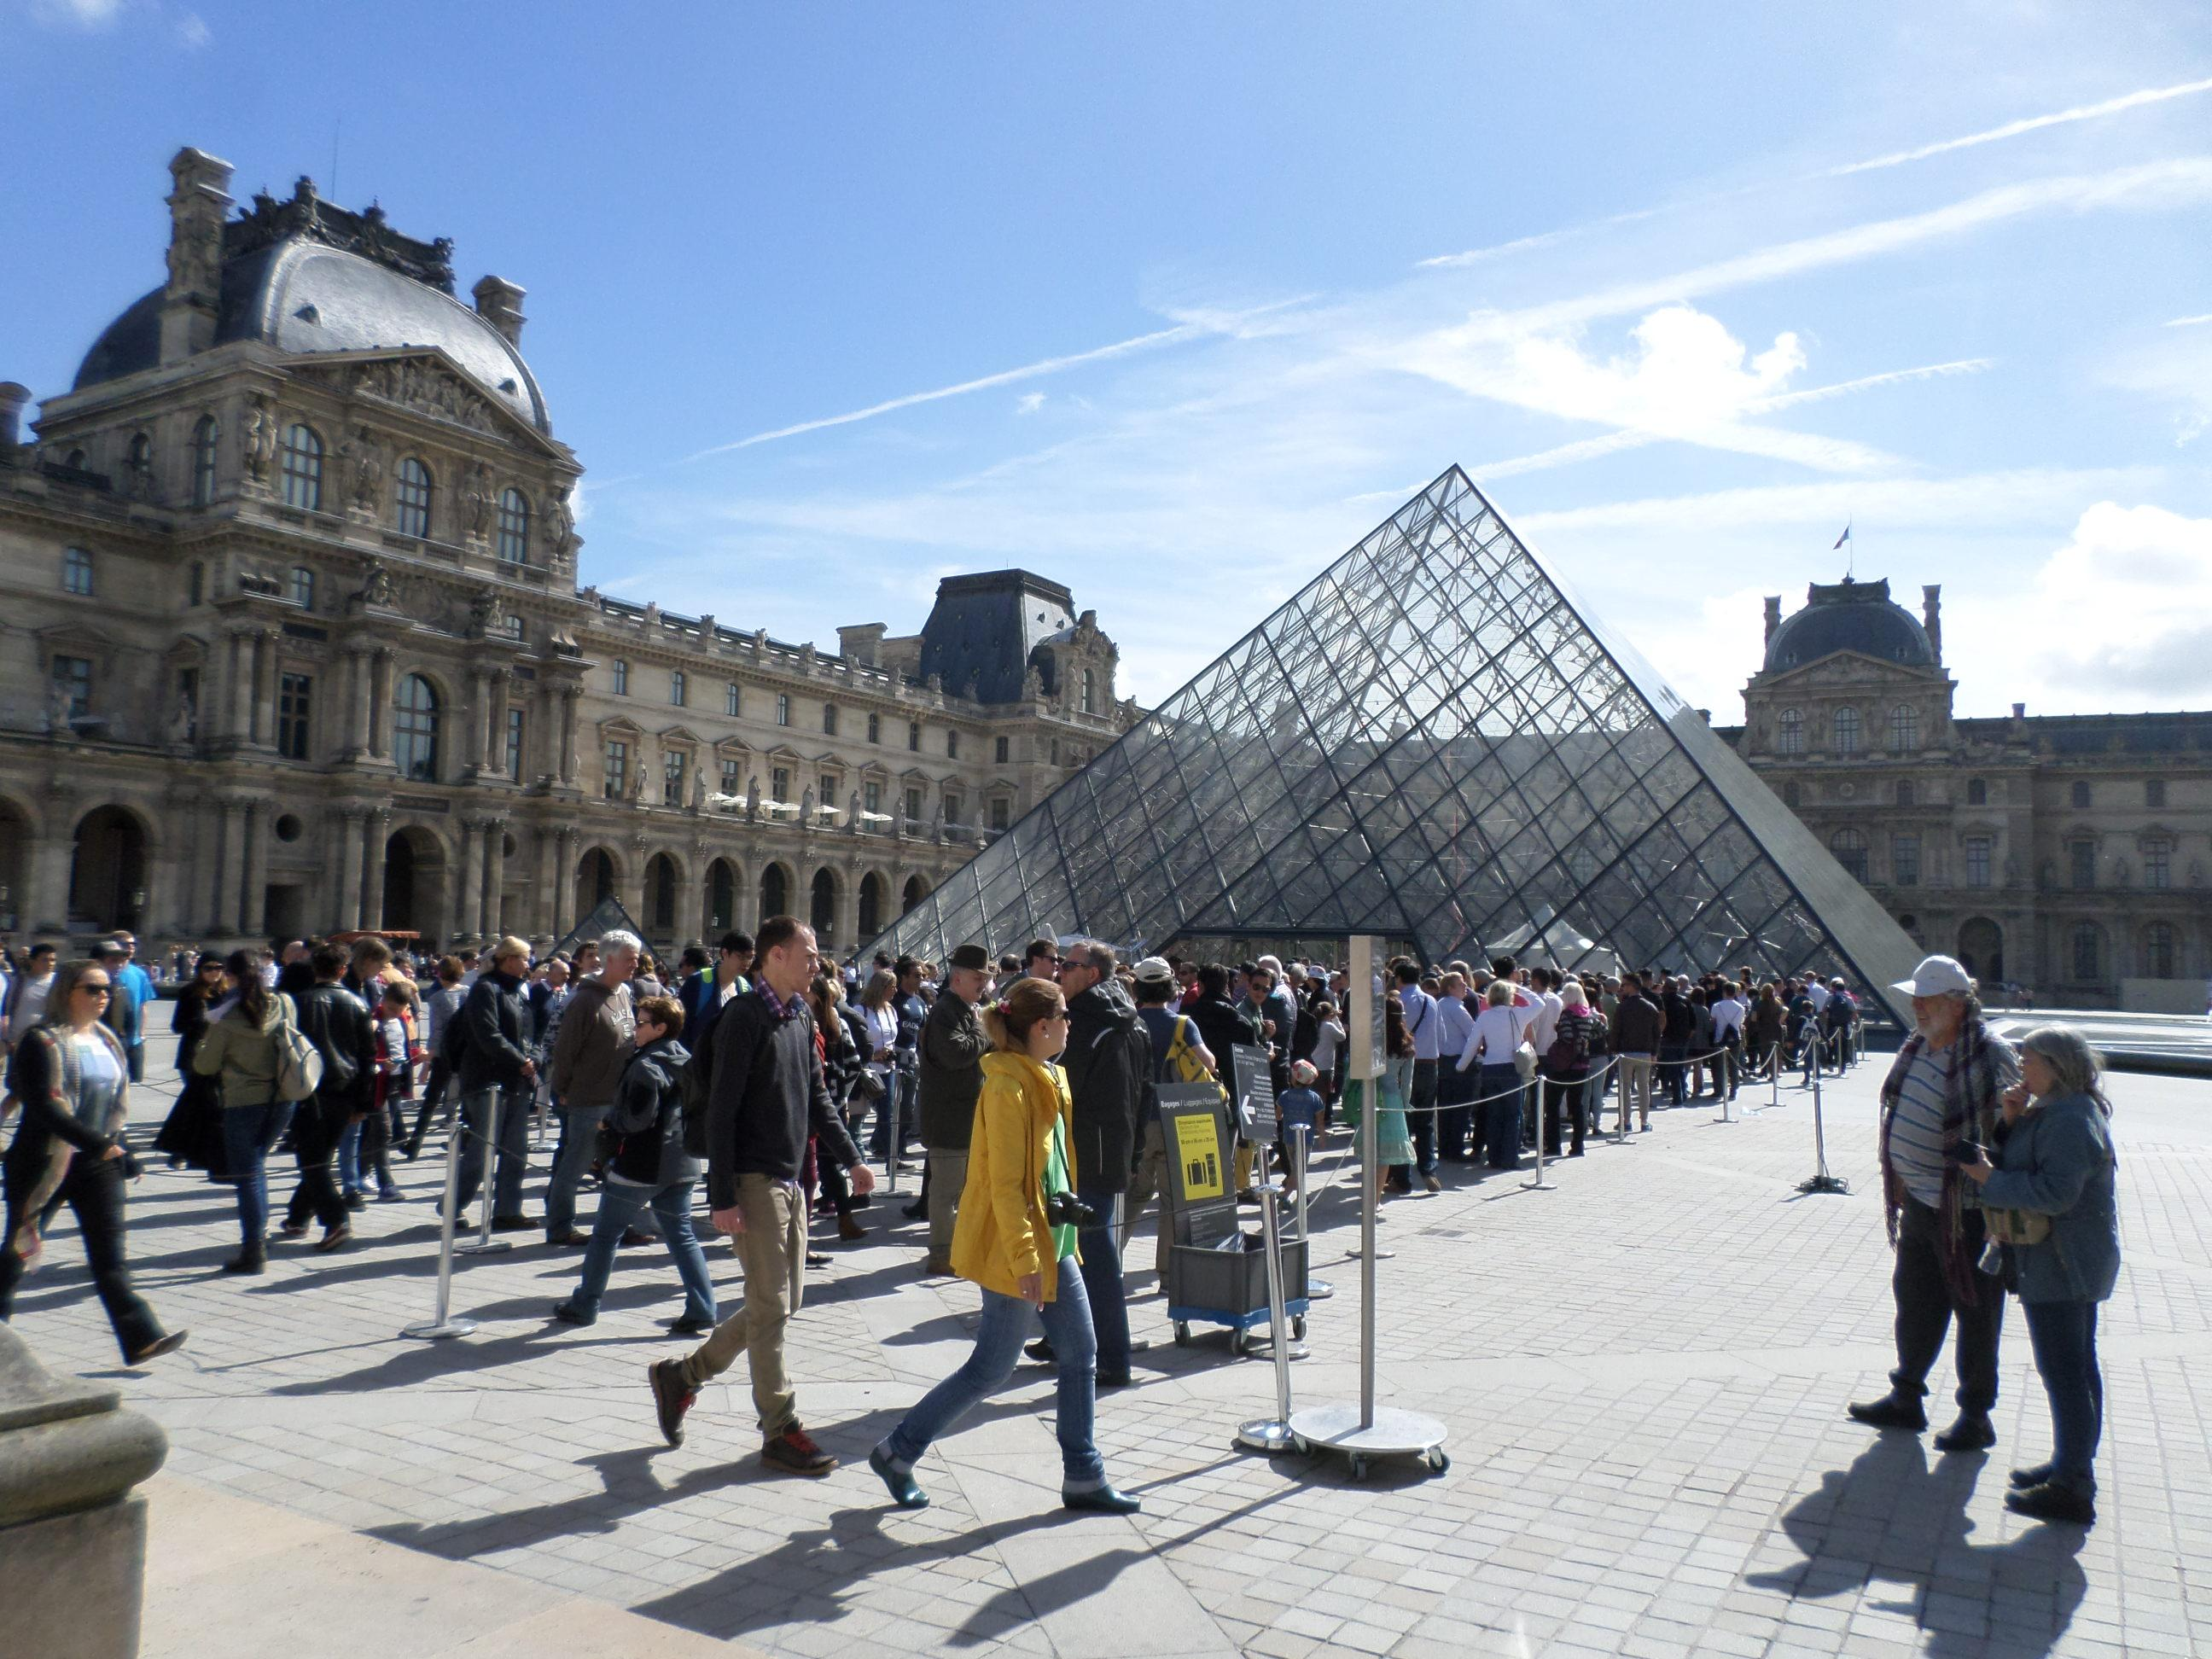 The crowd waiting to get into the Louvre in front of the pyramid.